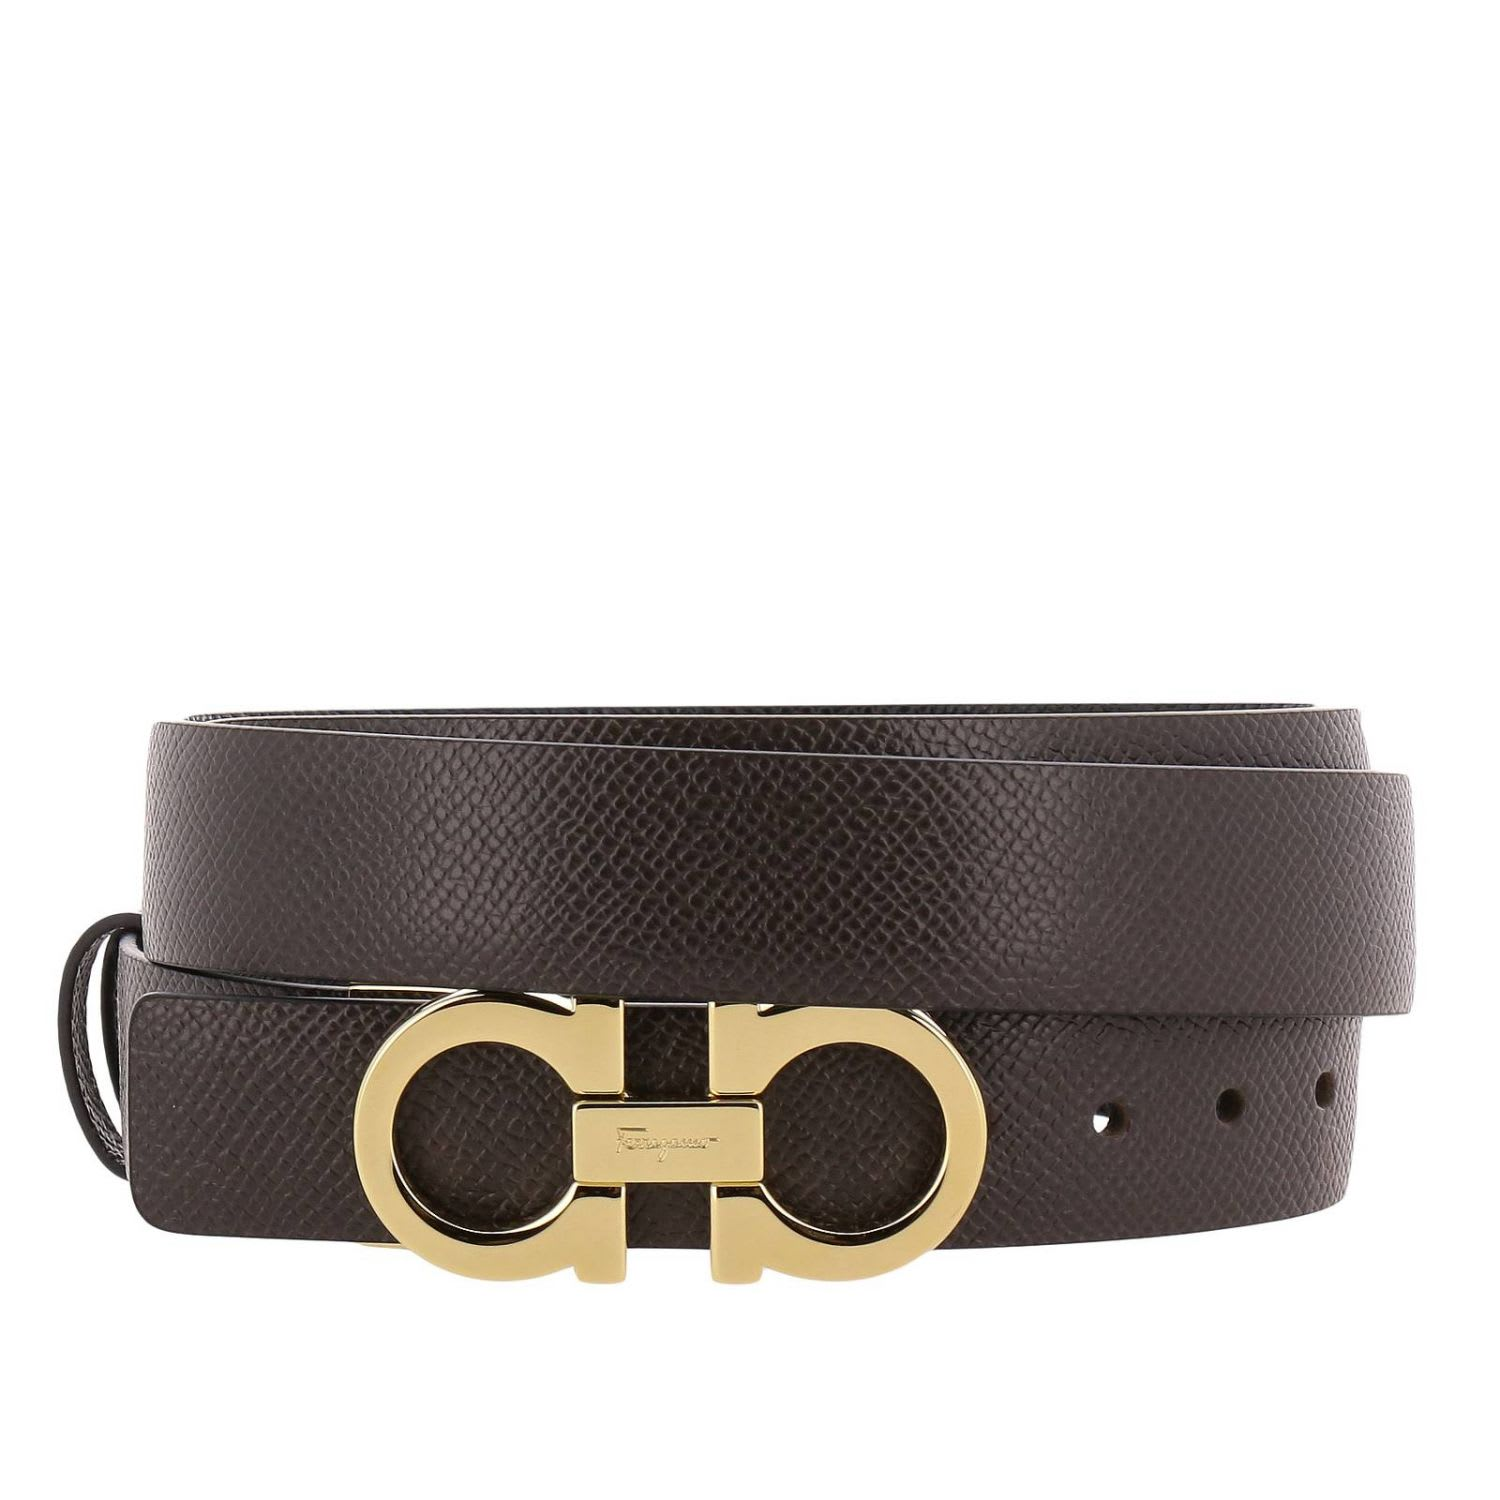 Salvatore Ferragamo Belt Ferragamo Gancini Adjustable And Reversible Buckle  Belt In Genuine Score Leather